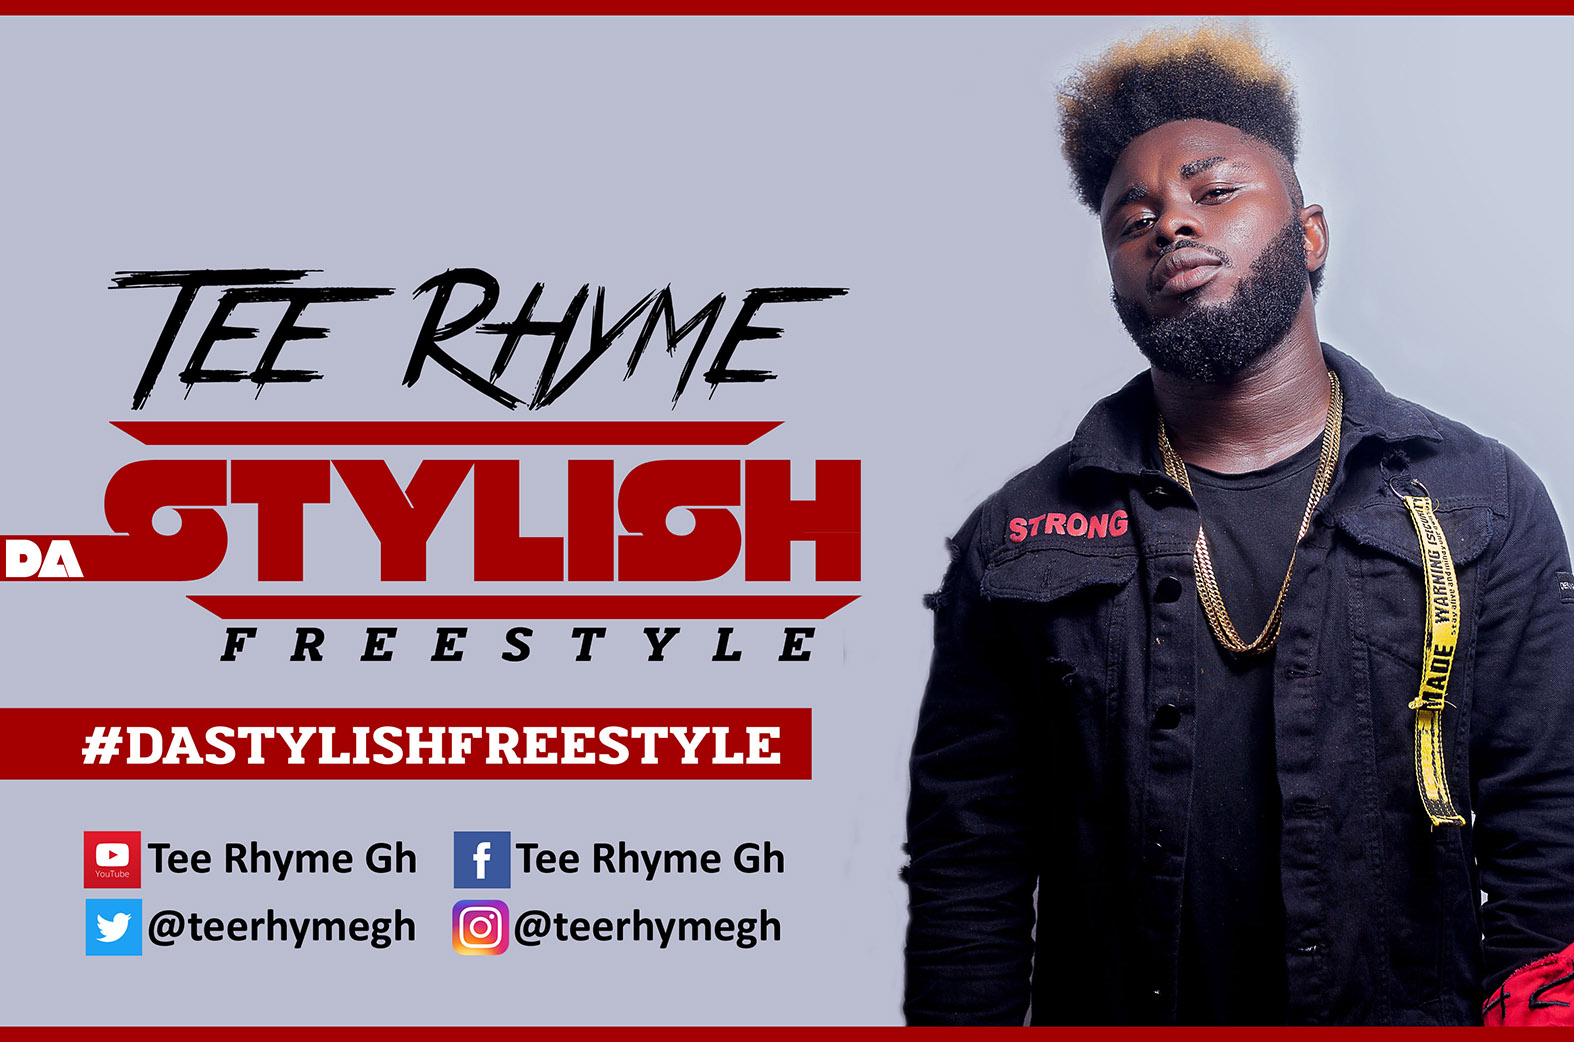 Tee Rhyme to come out with Da Stylish freestyle videos this year